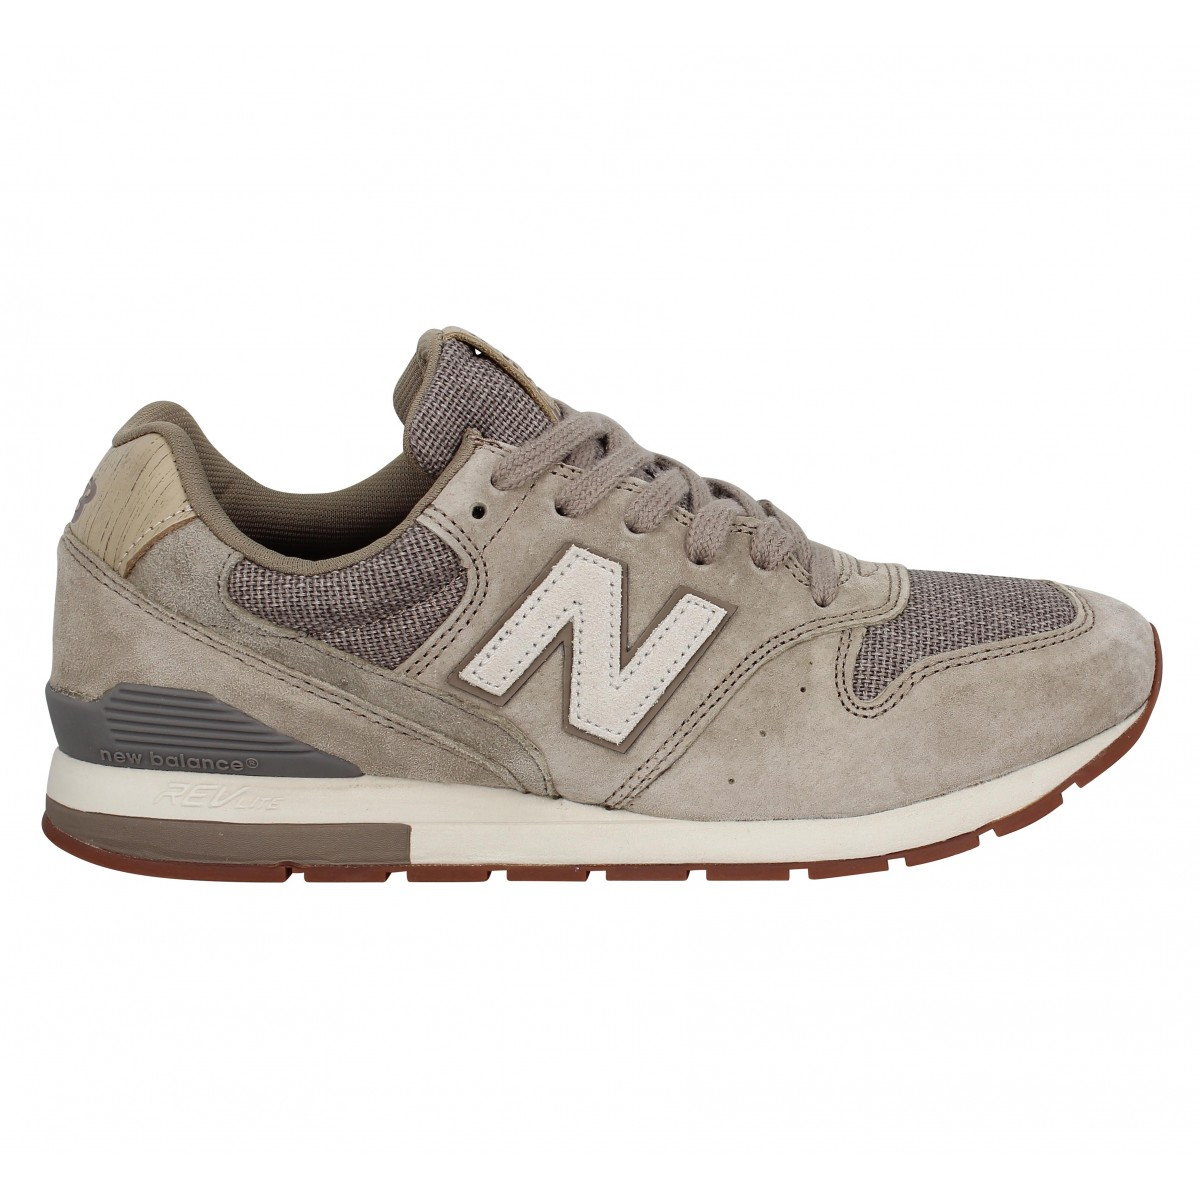 new balance couleur taupe